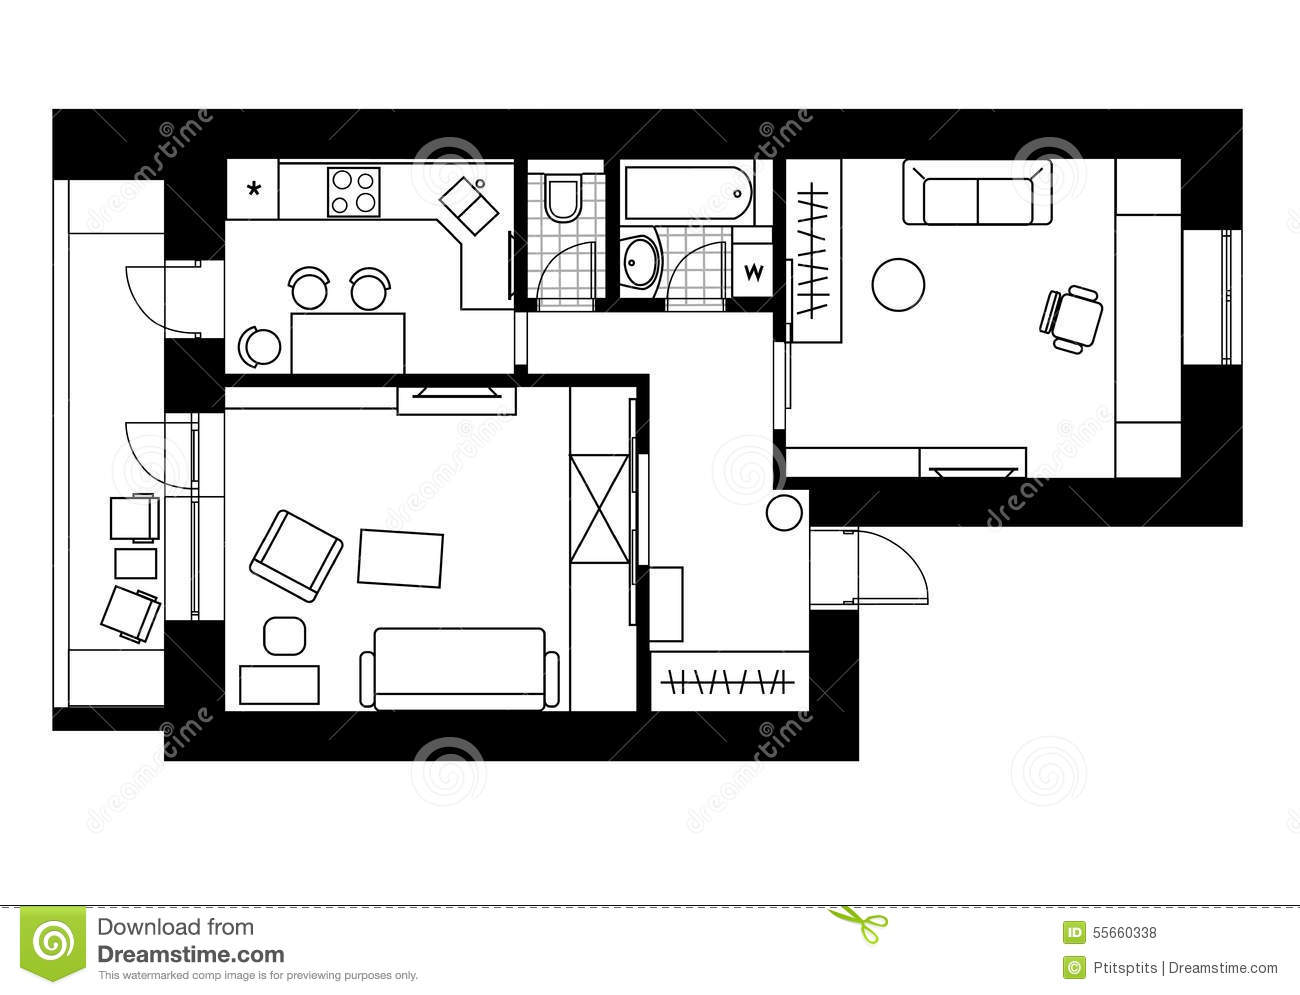 Drawing plan interior of the apartment with one bedroom for Apartment stock plans